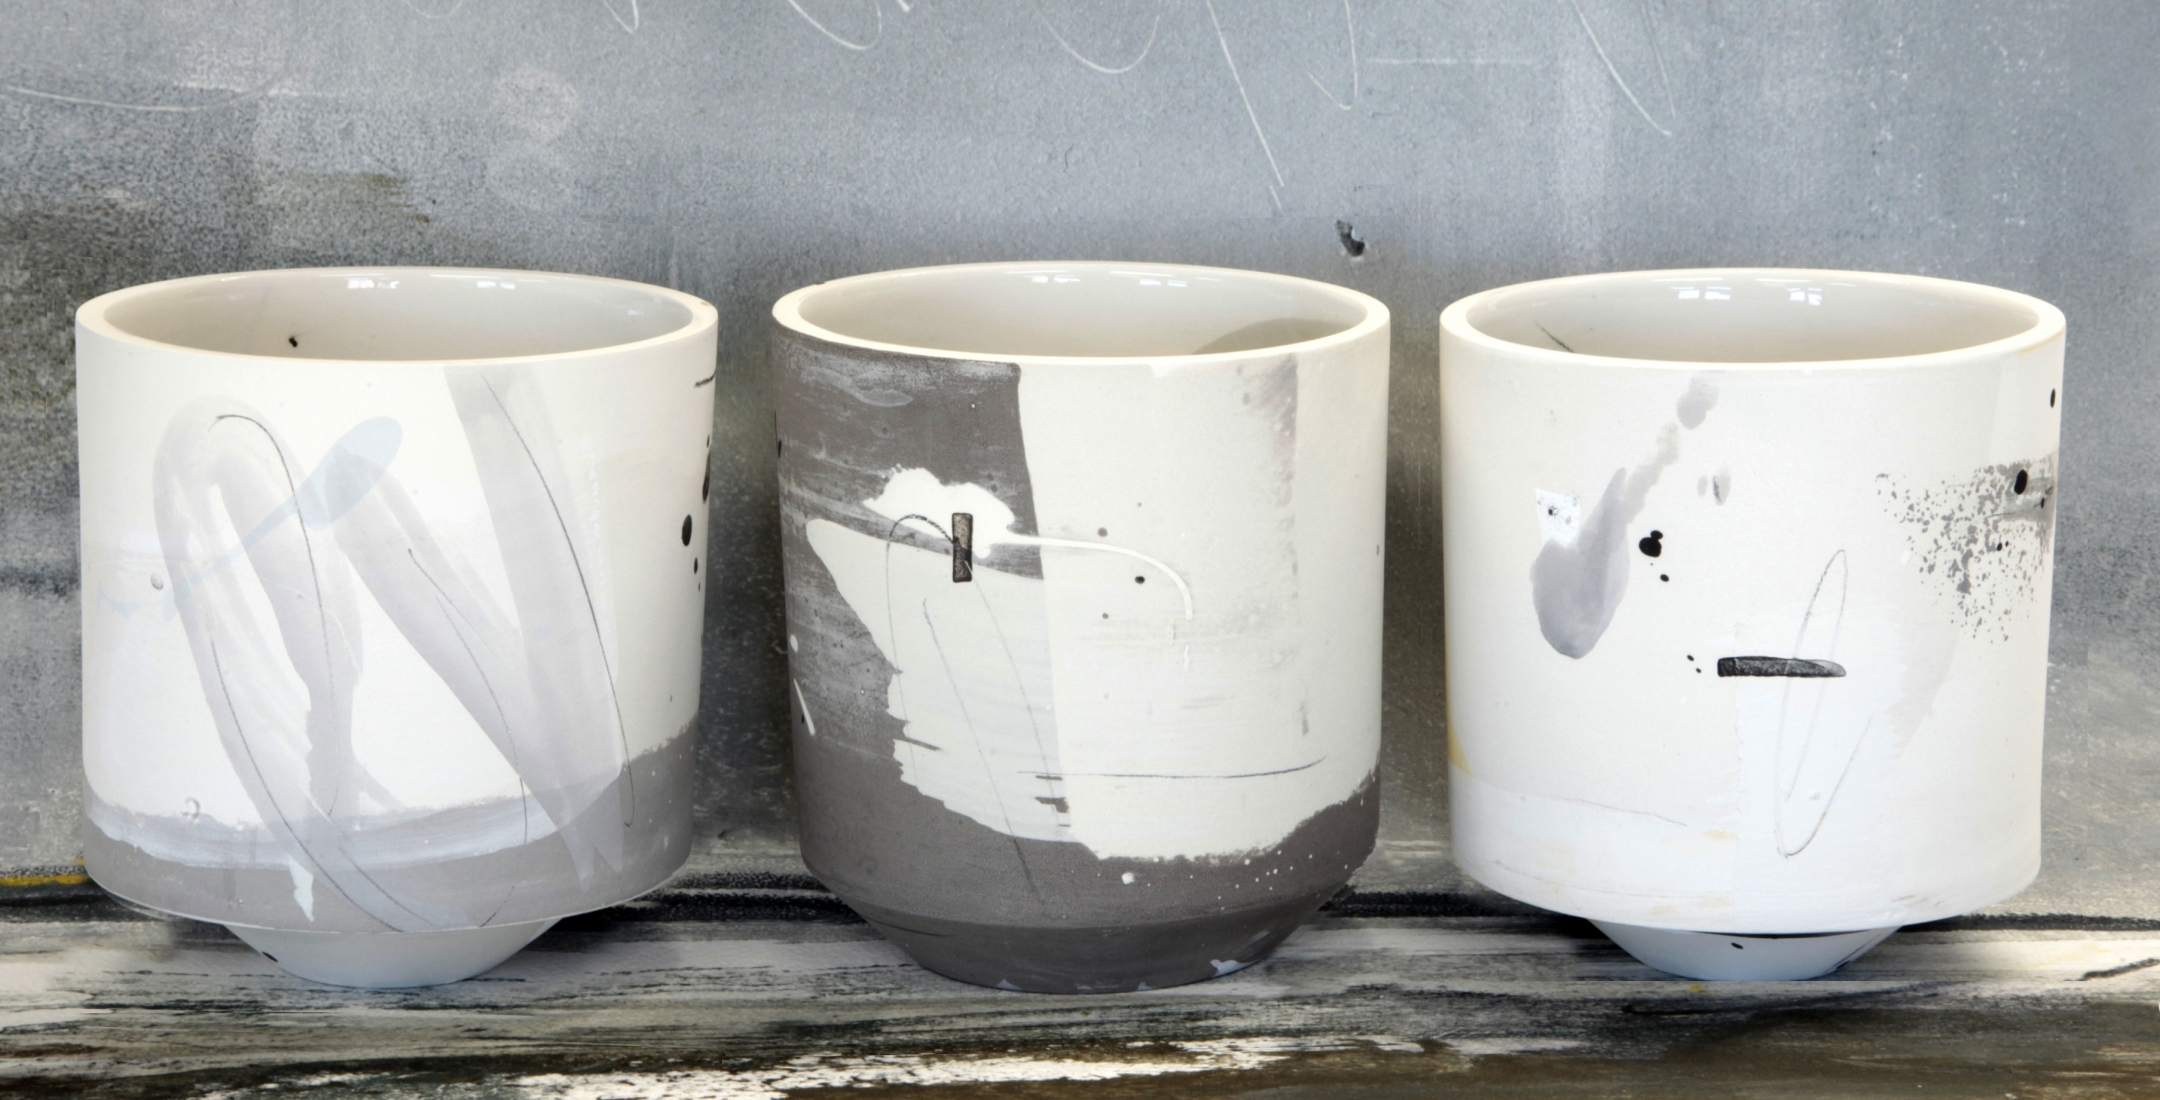 Gathering Calm - An exhibition of new ceramics, paintings and prints by Hannah Tounsend